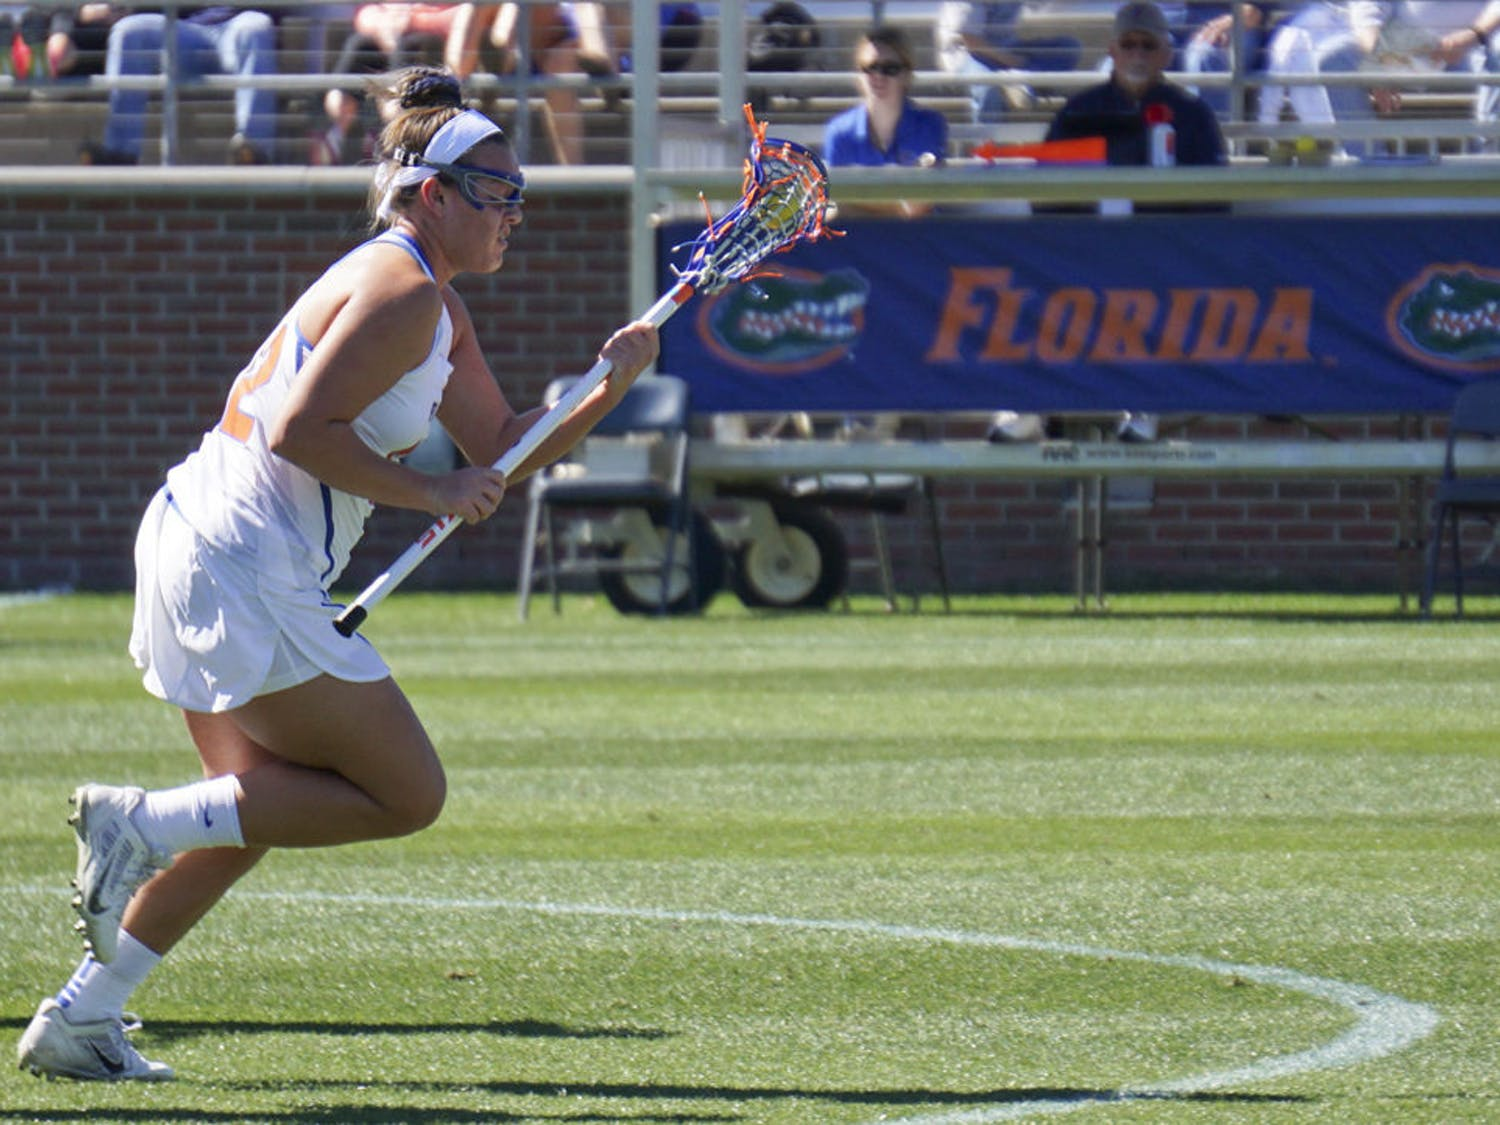 Senior Taylor Bresnahan scored a hat trick for Florida in a dominant, 14-7 victory over Lousiville.